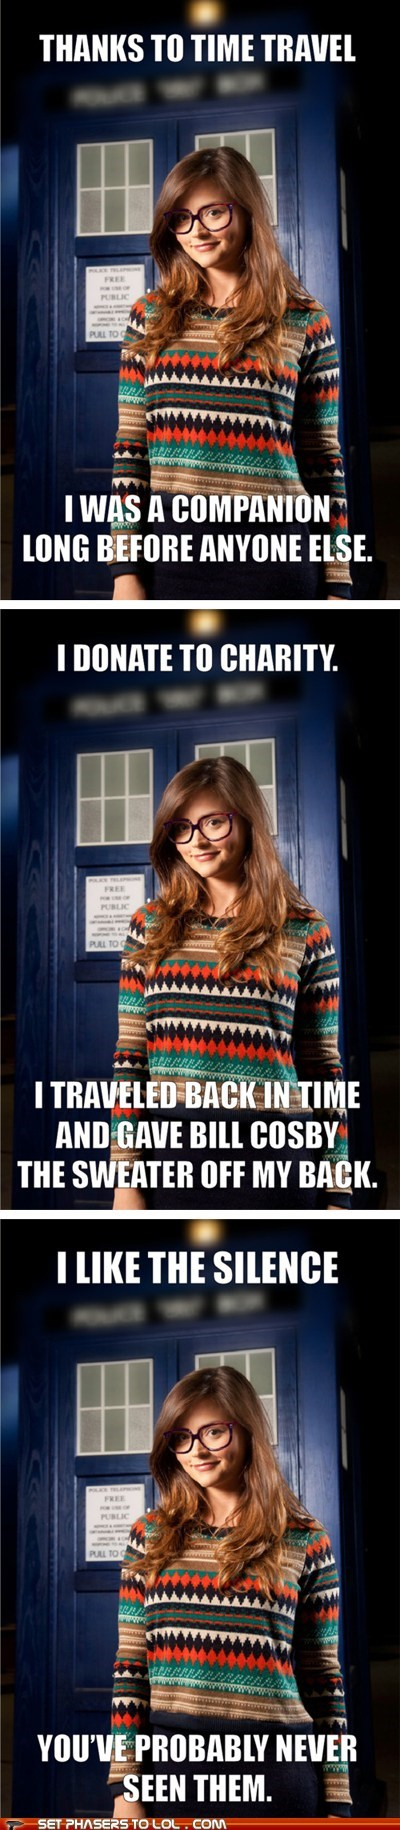 bill cosby companion doctor who hipster jenna-louise coleman Memes silence sweater youve-probably-never-heard-of-it - 6061469952